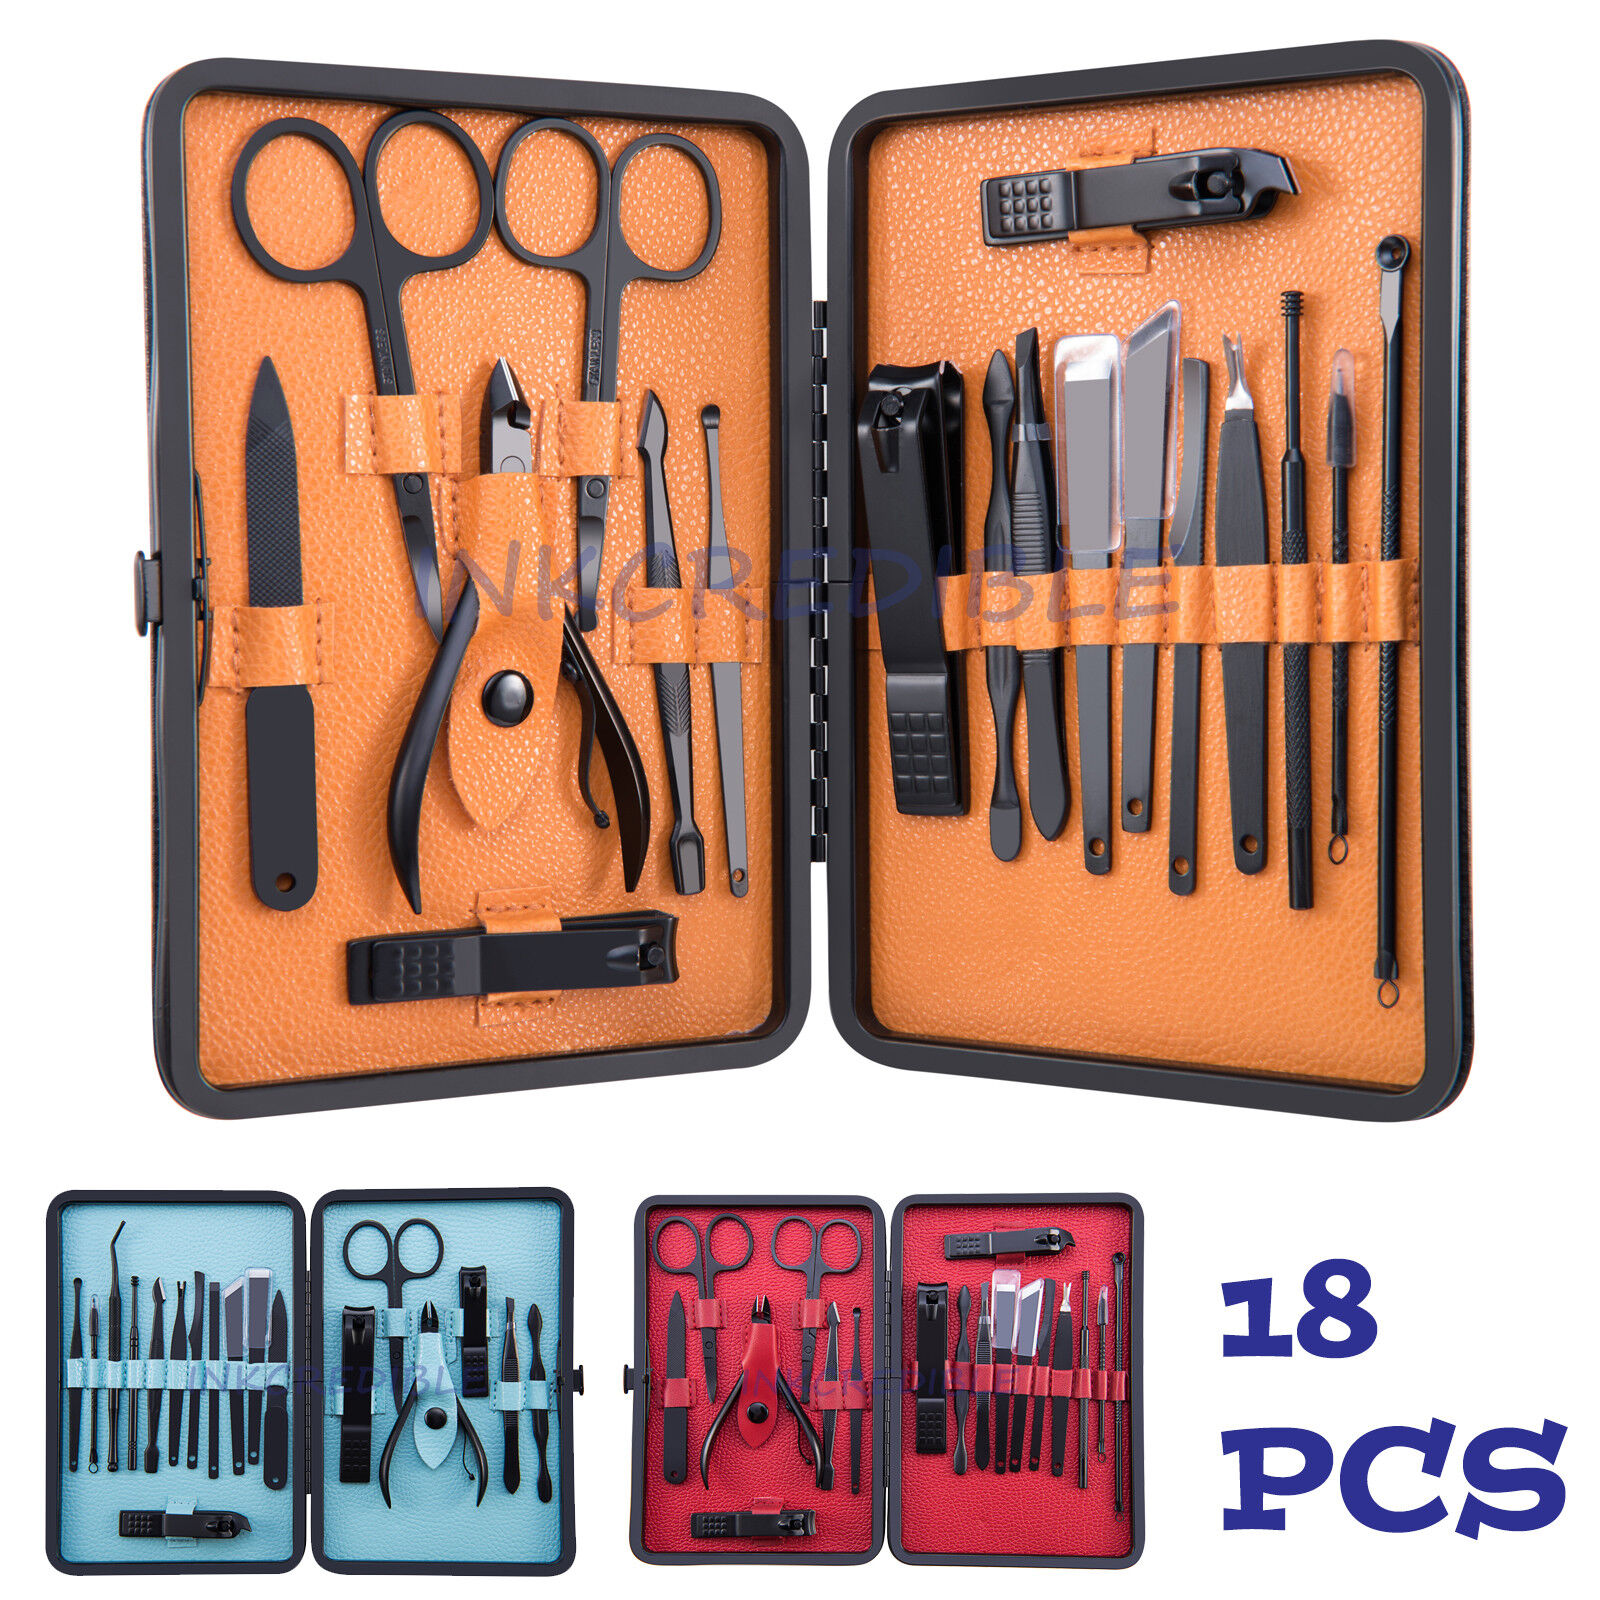 18PCS Pedicure / Manicure Set Nail Clippers Cleaner Cuticle Grooming Kit Case Health & Beauty